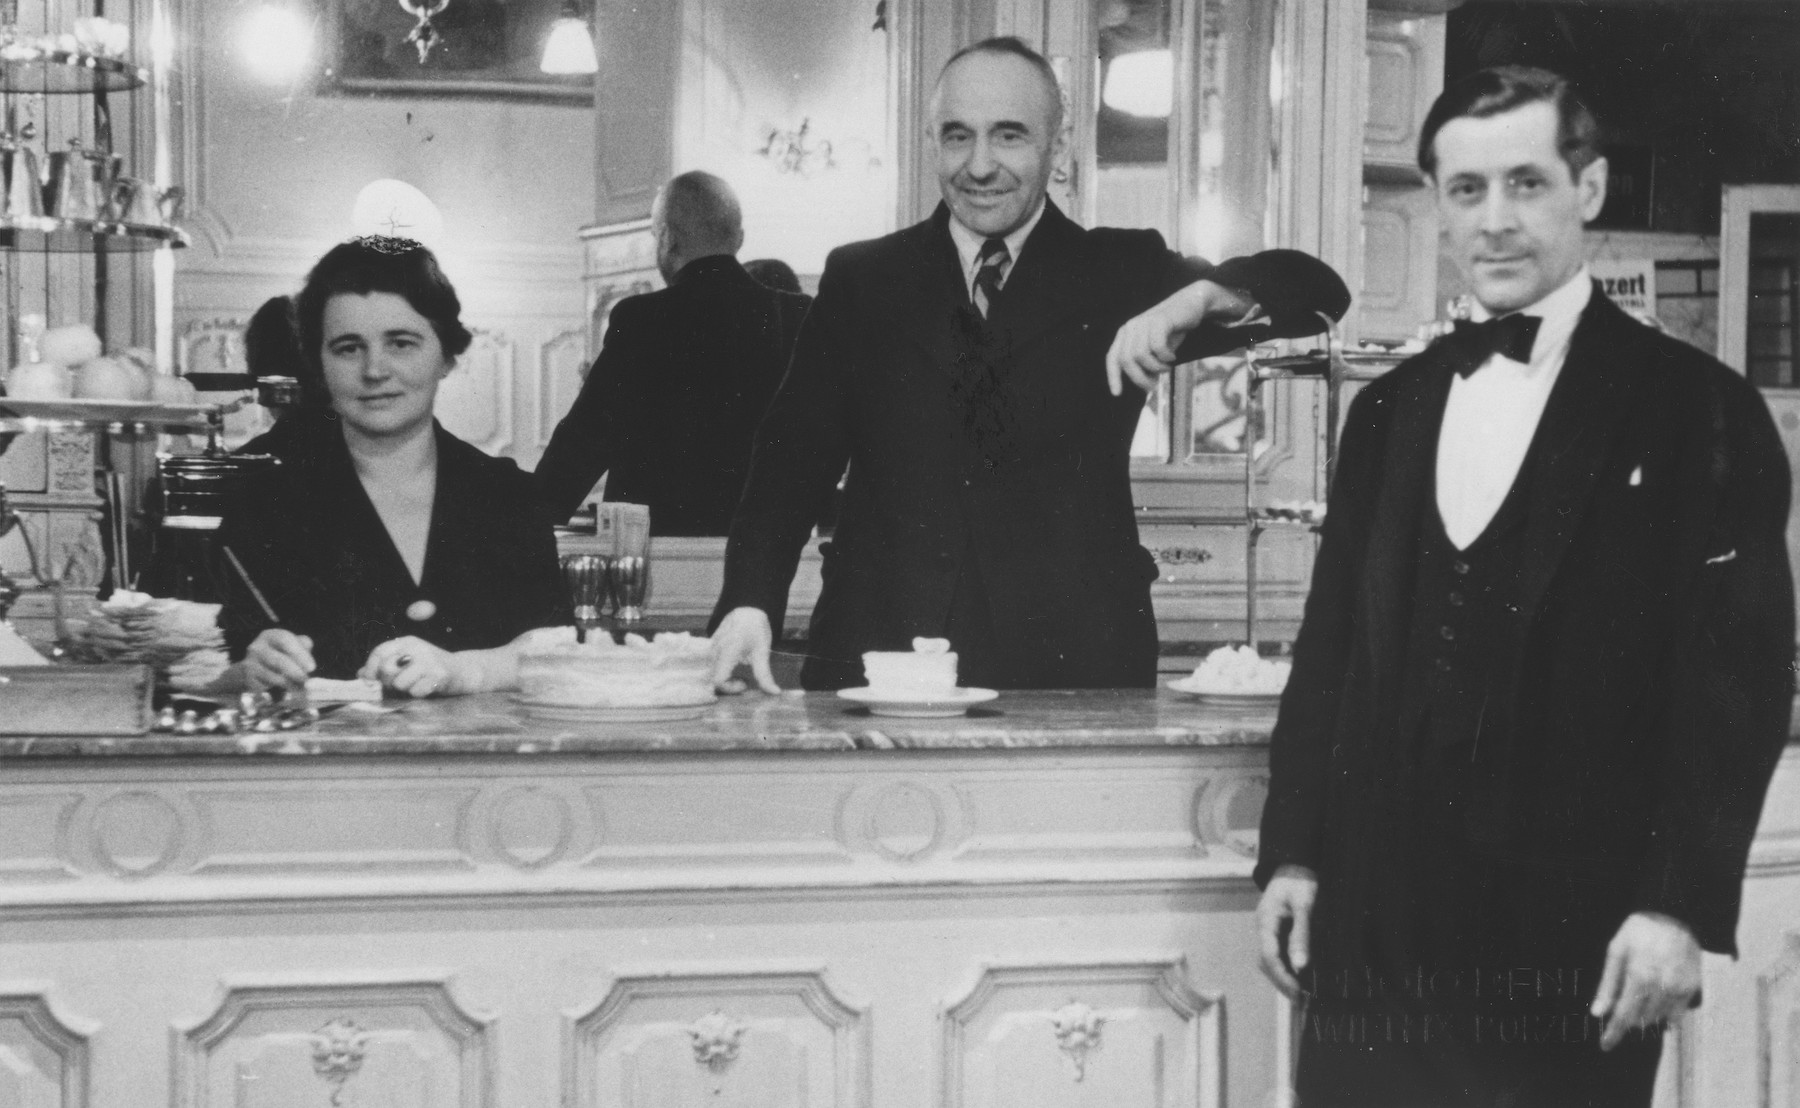 Arthur Mayer stands behind the counter of his coffee house in Vienna.